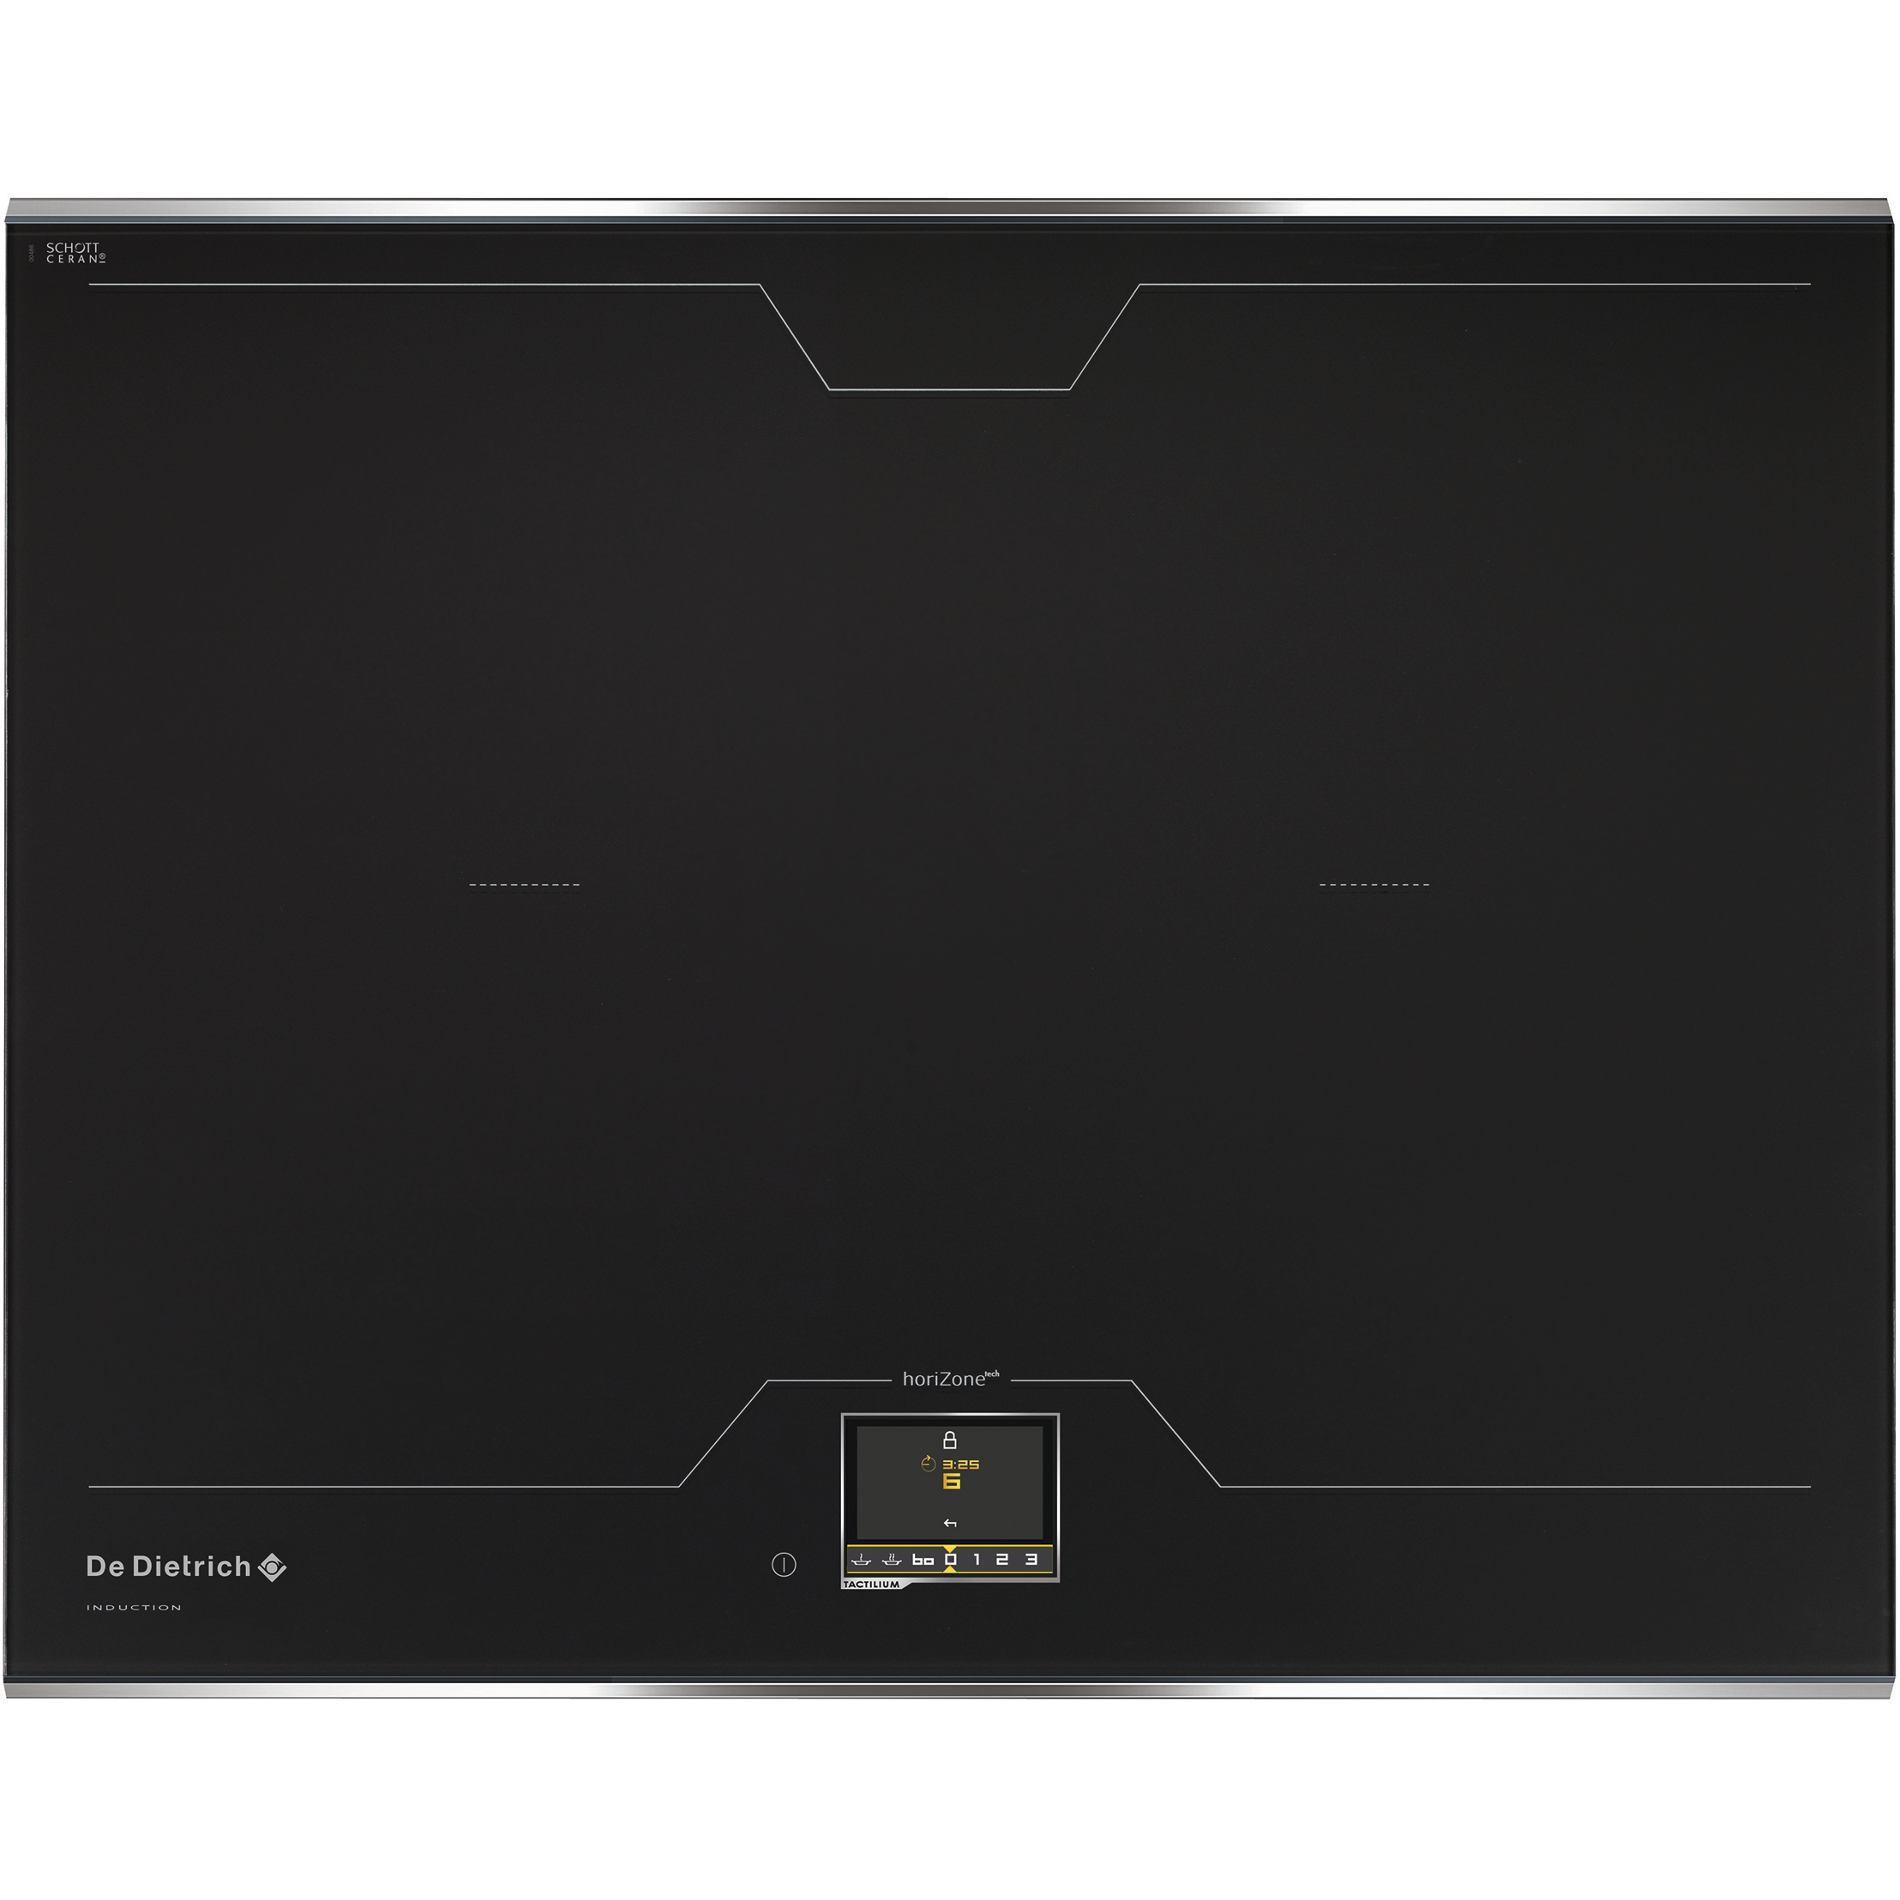 Table de cuisson induction 4 foyer(s) - Touches sensitives - Zones de cuisson modulables  DTI1568DG